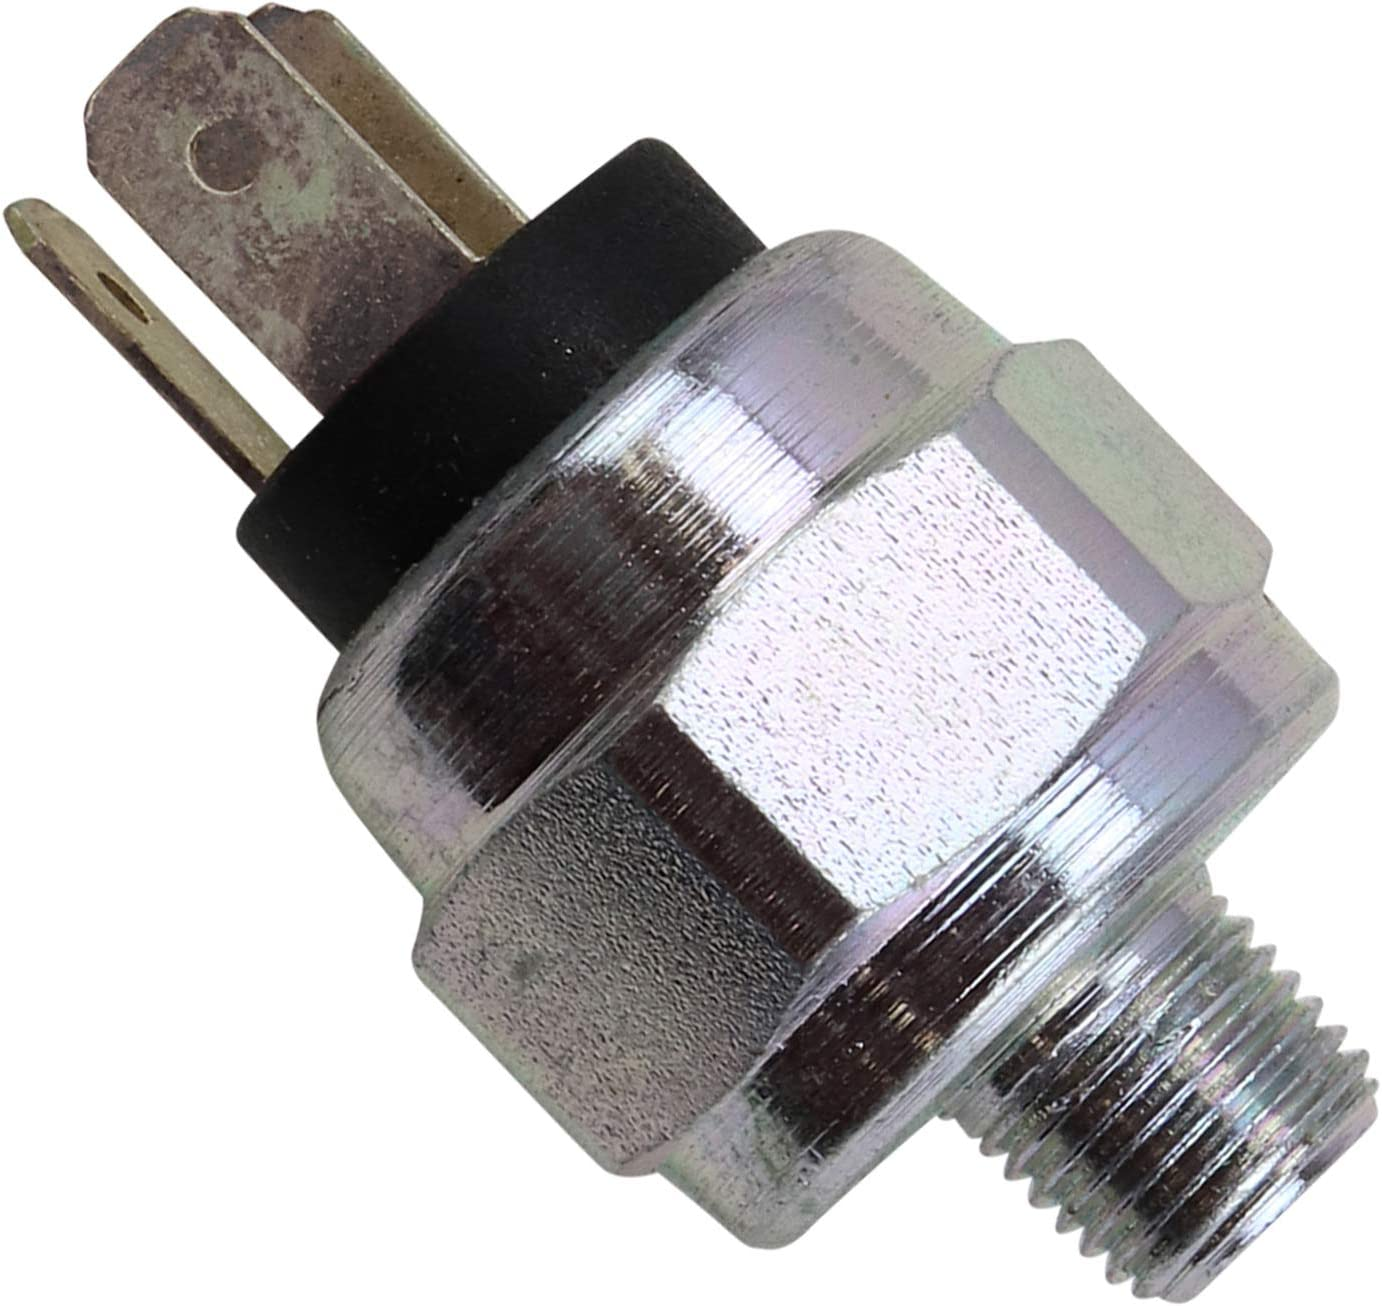 Beck Arnley 201-1086 Light Max 73% OFF Switch Stop Don't miss the campaign